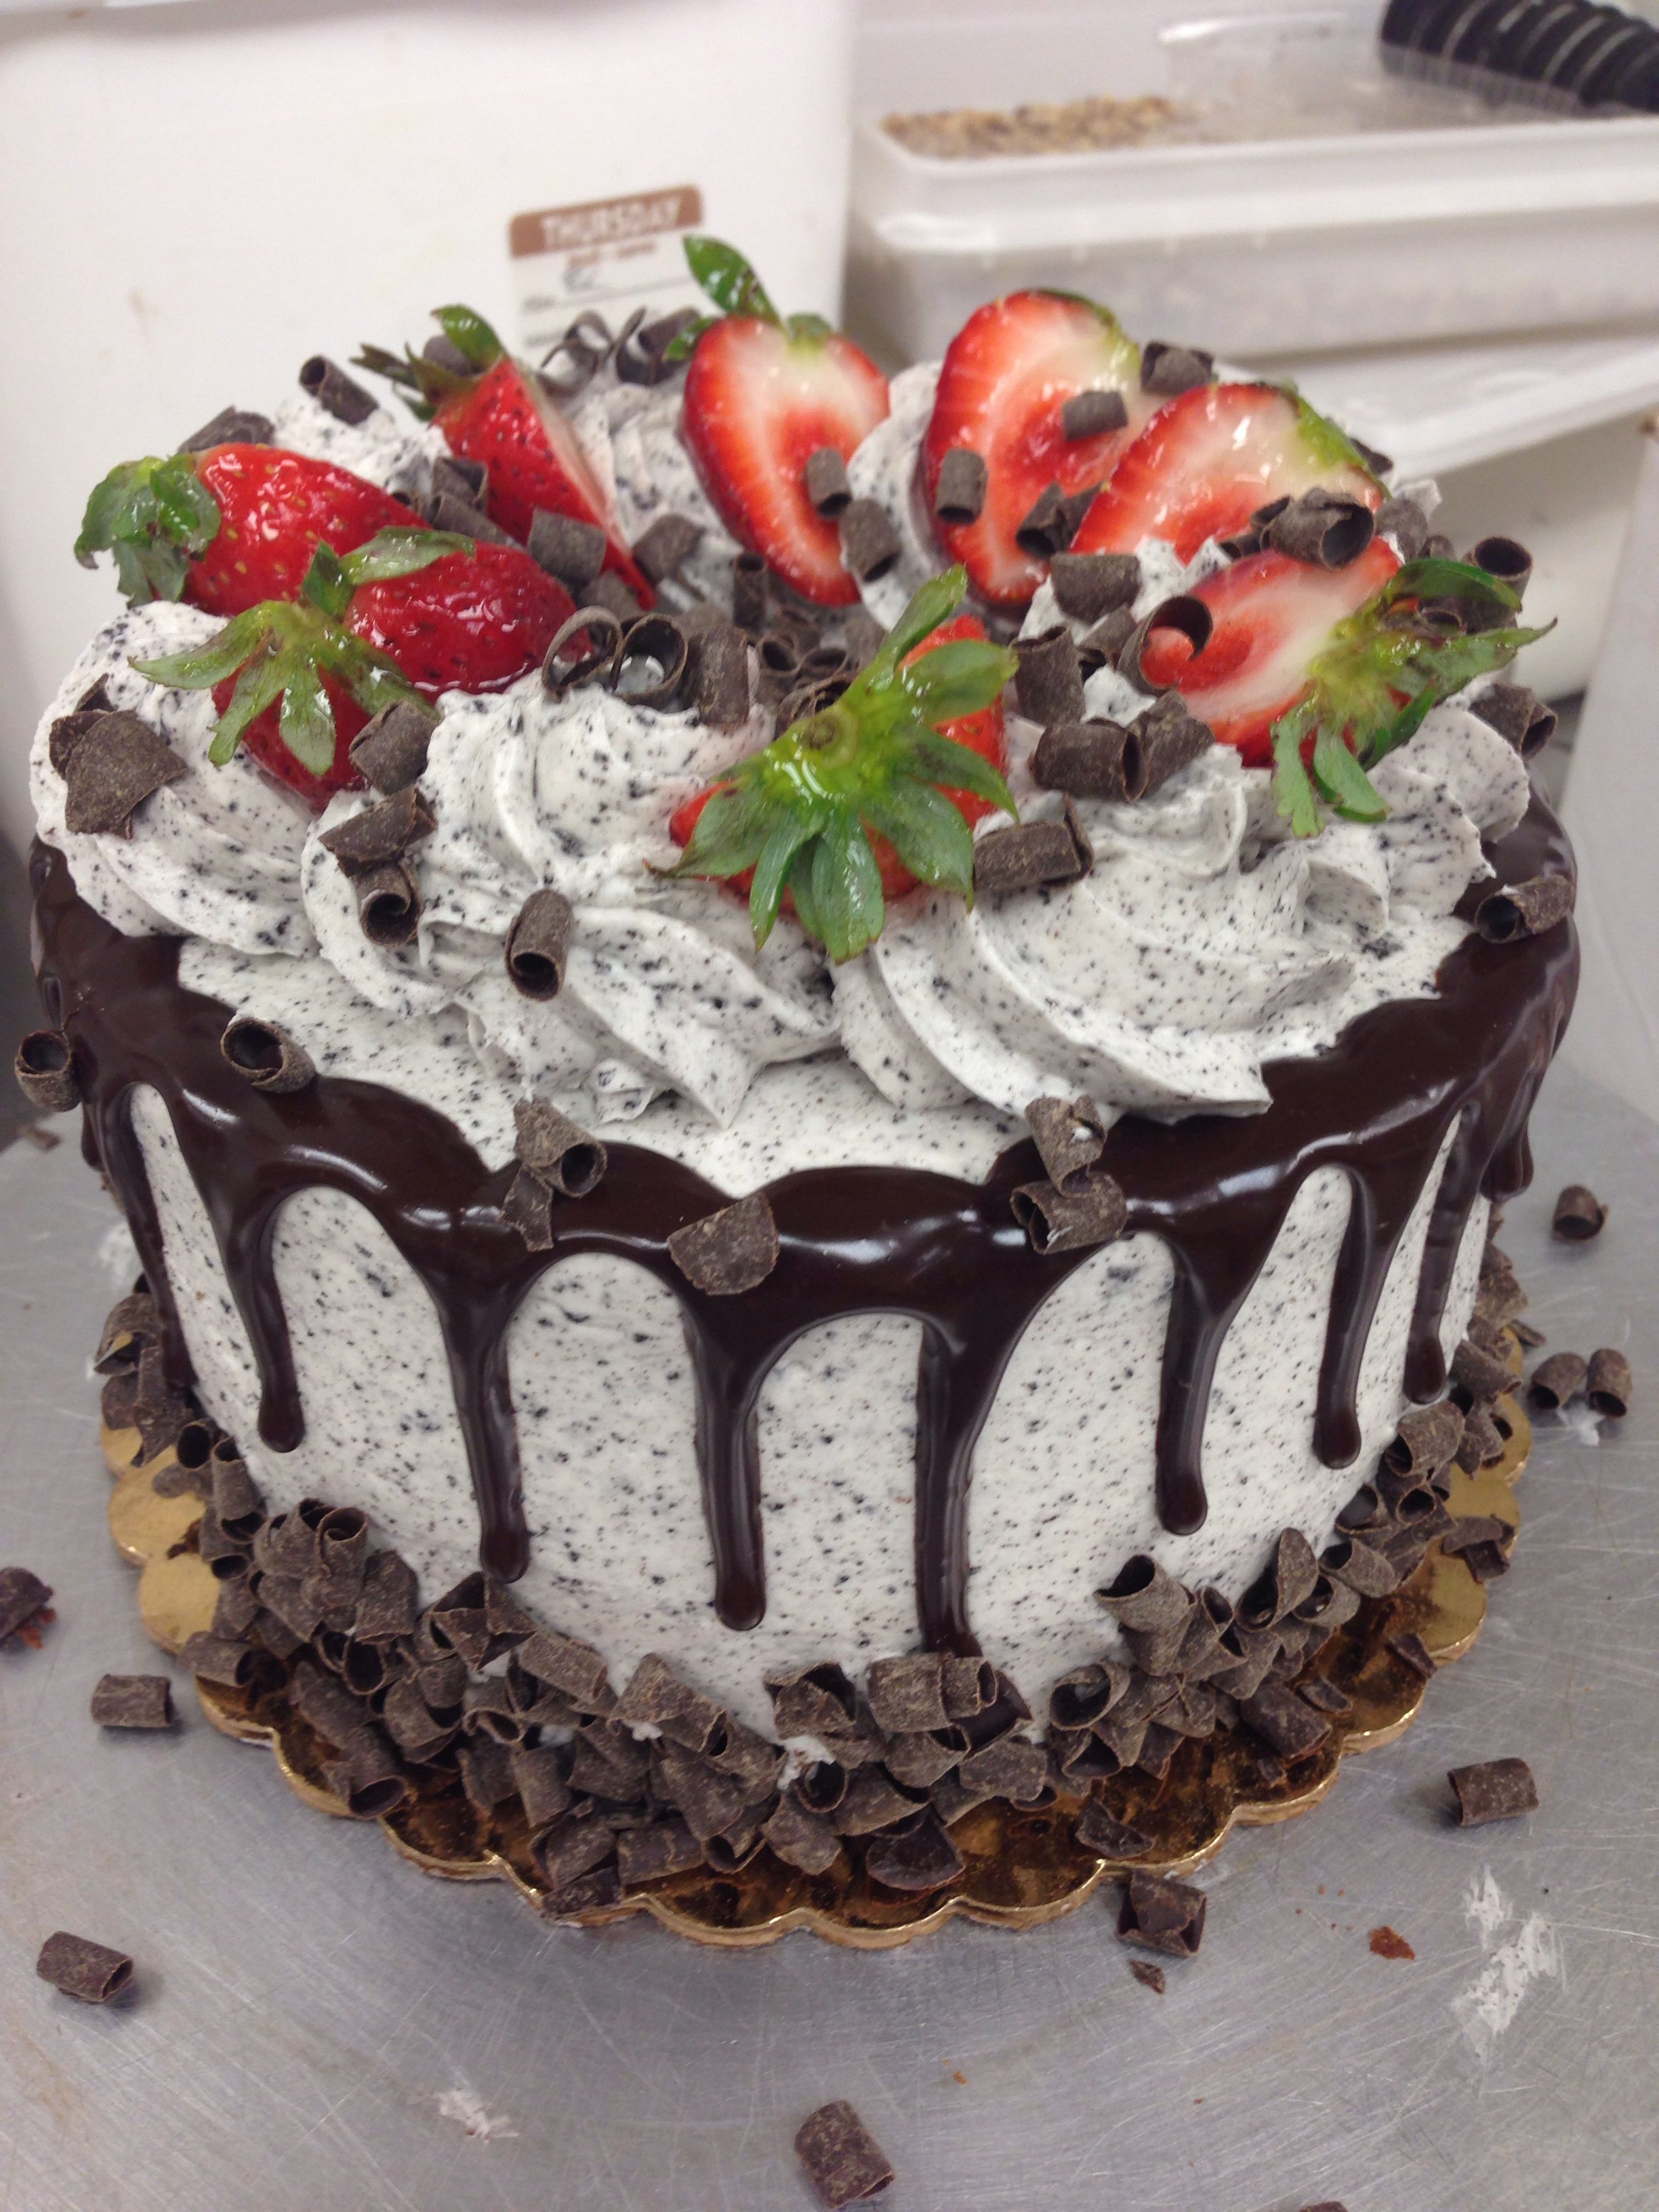 Cookie and cream with strawberry | tortas especiales | Pinterest ...